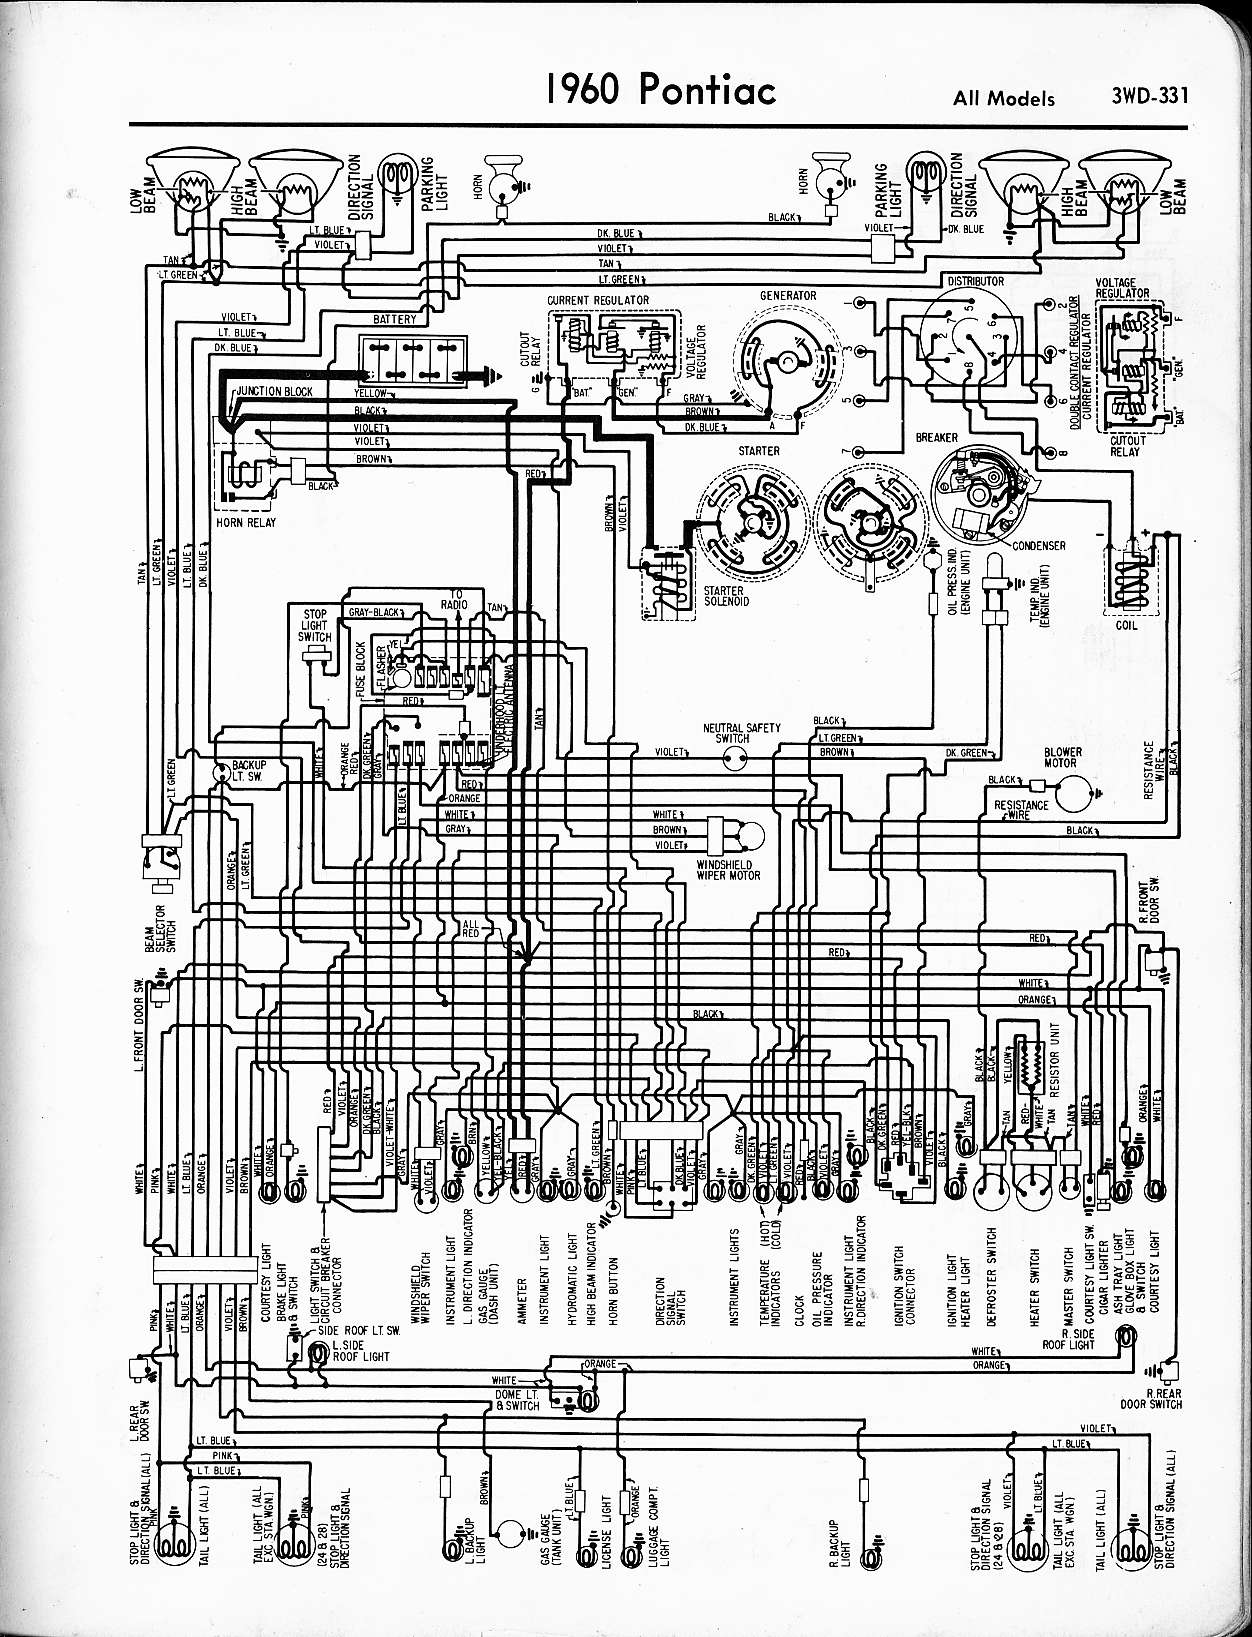 MWire5765 331 wiring diagram pontiac the wiring diagram readingrat net 1955 pontiac star chief wiring diagram at crackthecode.co